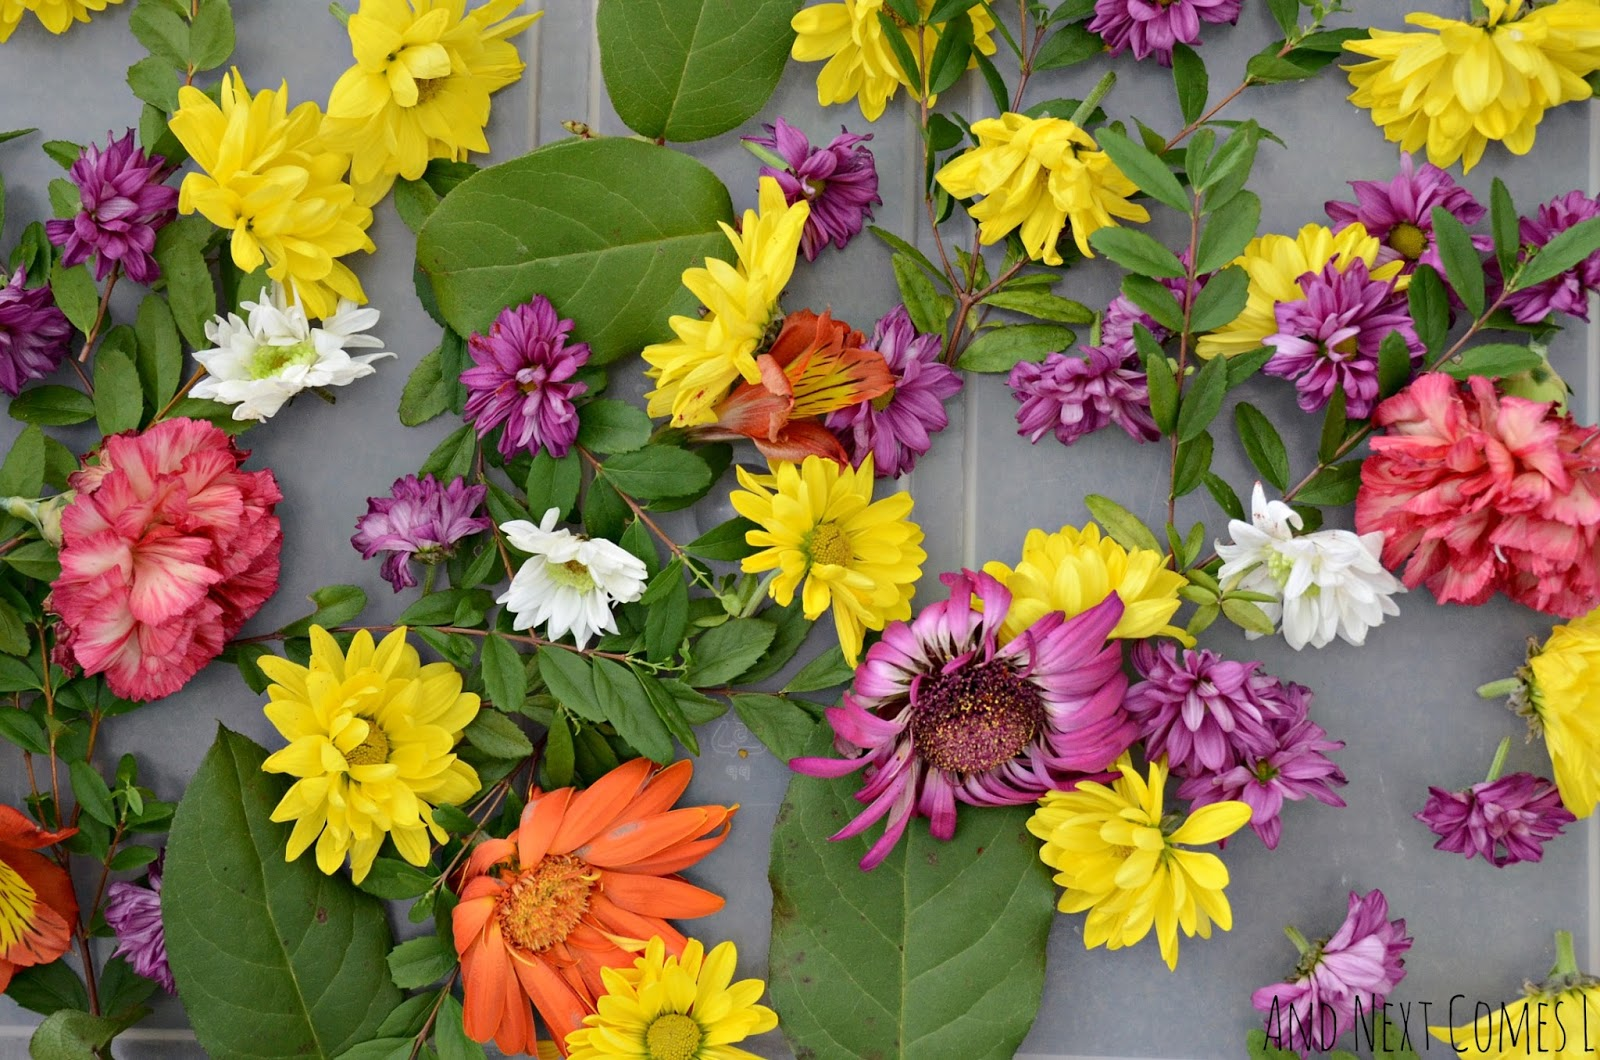 How to reuse fresh flowers for play and learning with toddlers and preschoolers from And Next Comes L